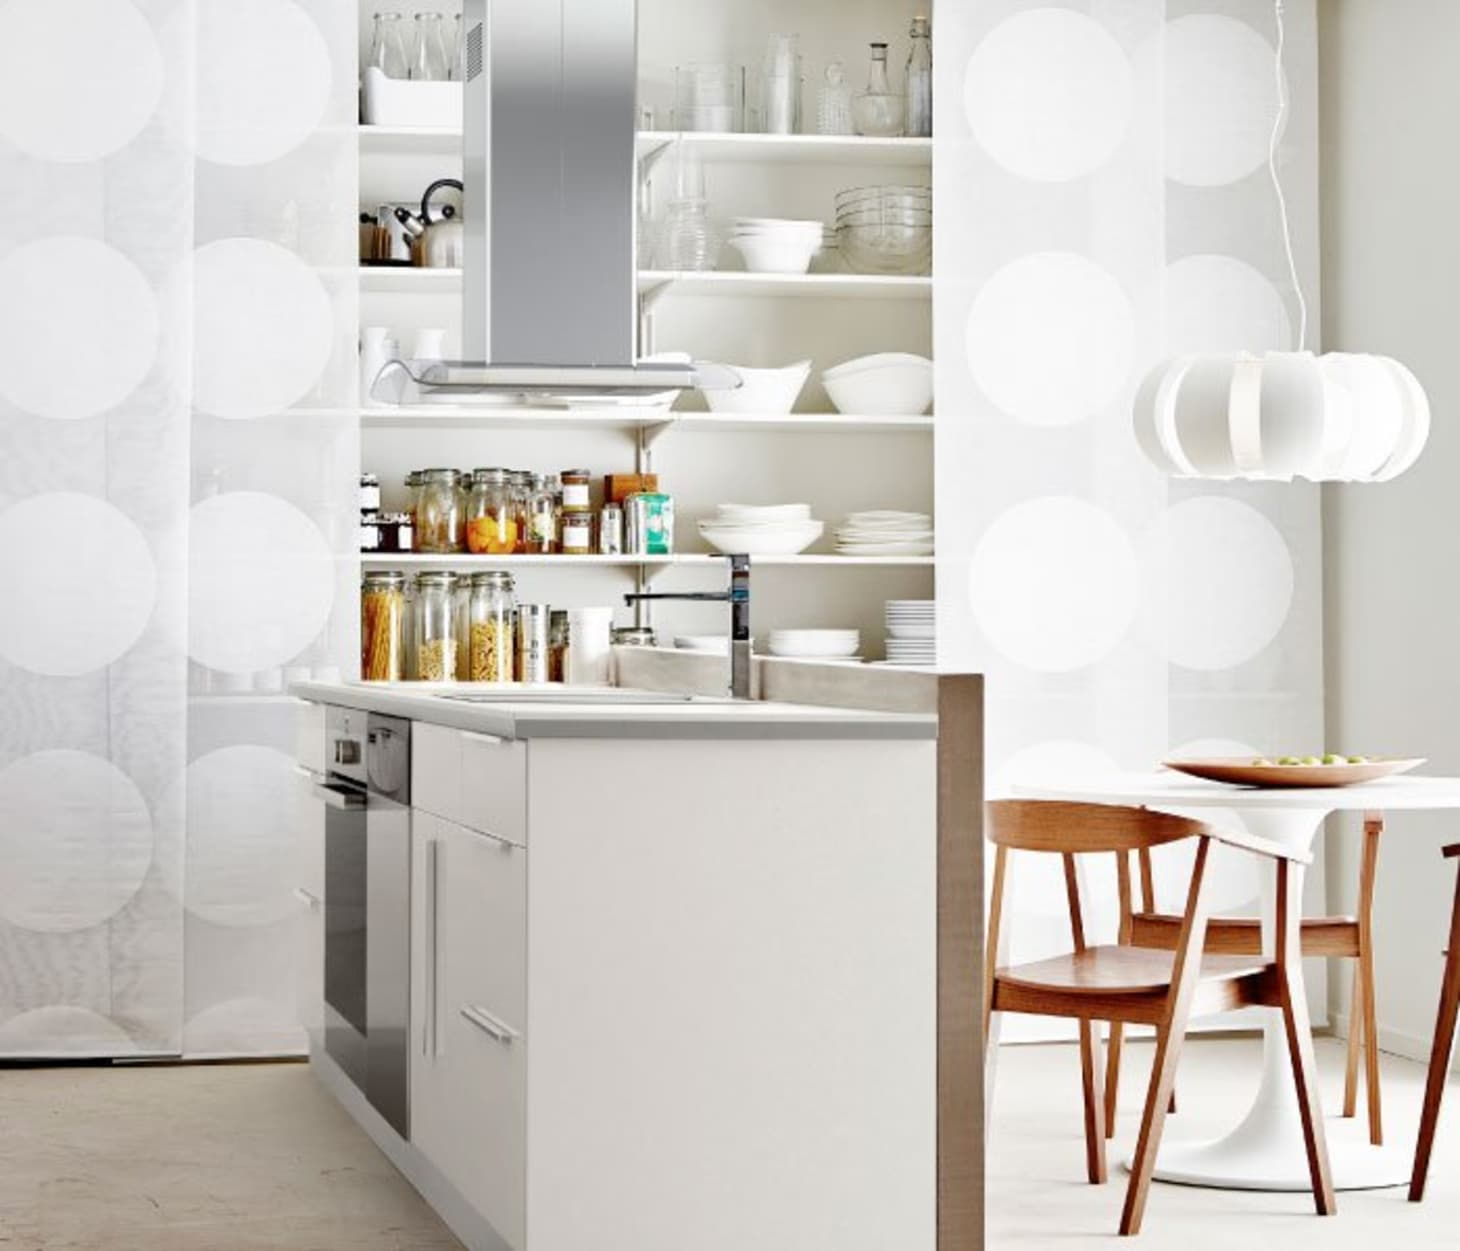 Are Ikea Kitchen Cabinets Good: Style Selector: Finding The Best IKEA Kitchen Cabinet